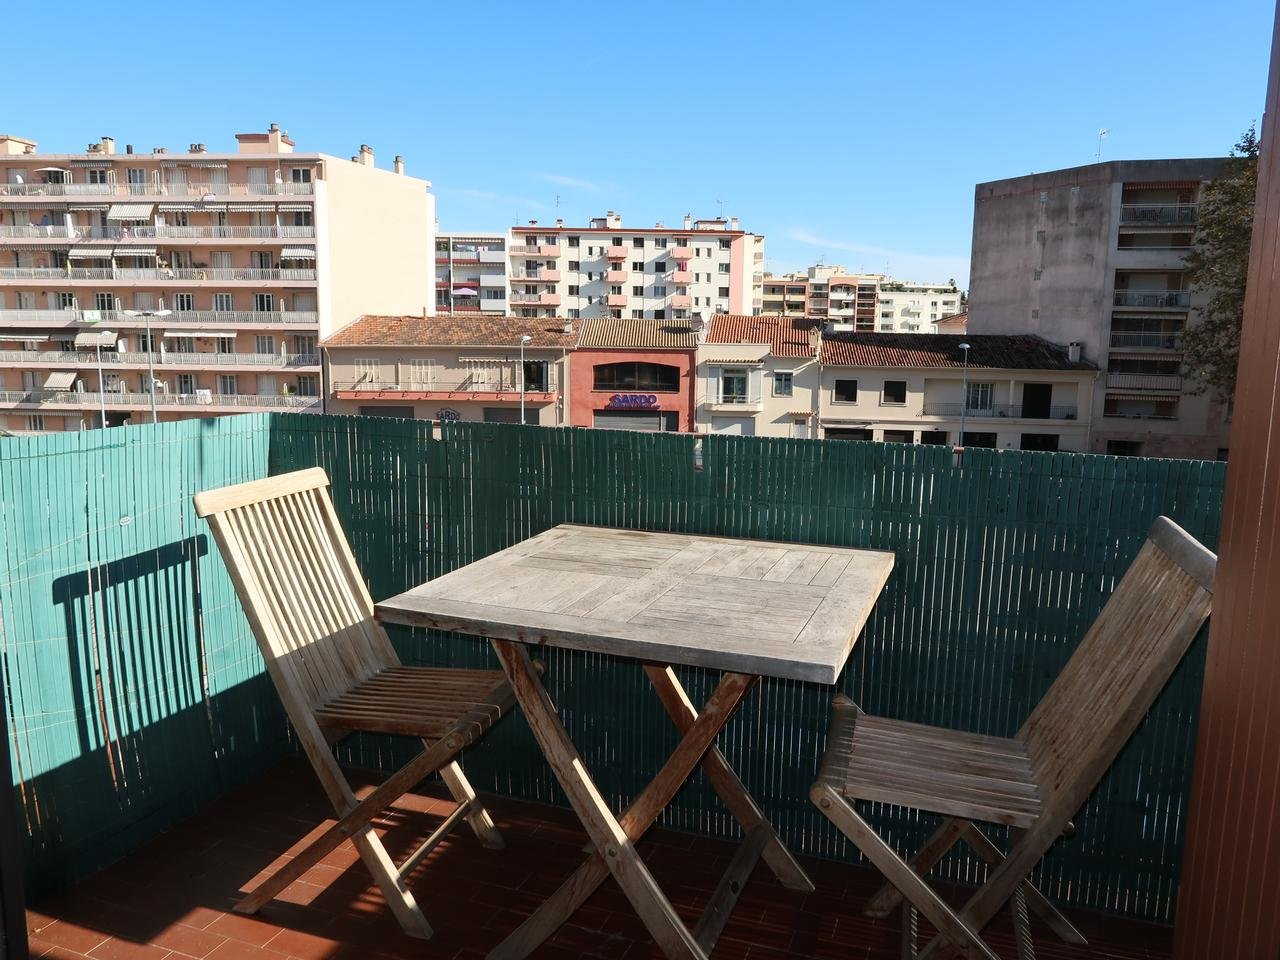 Appartement  2 Rooms 41.56m2  for sale   162 000 €